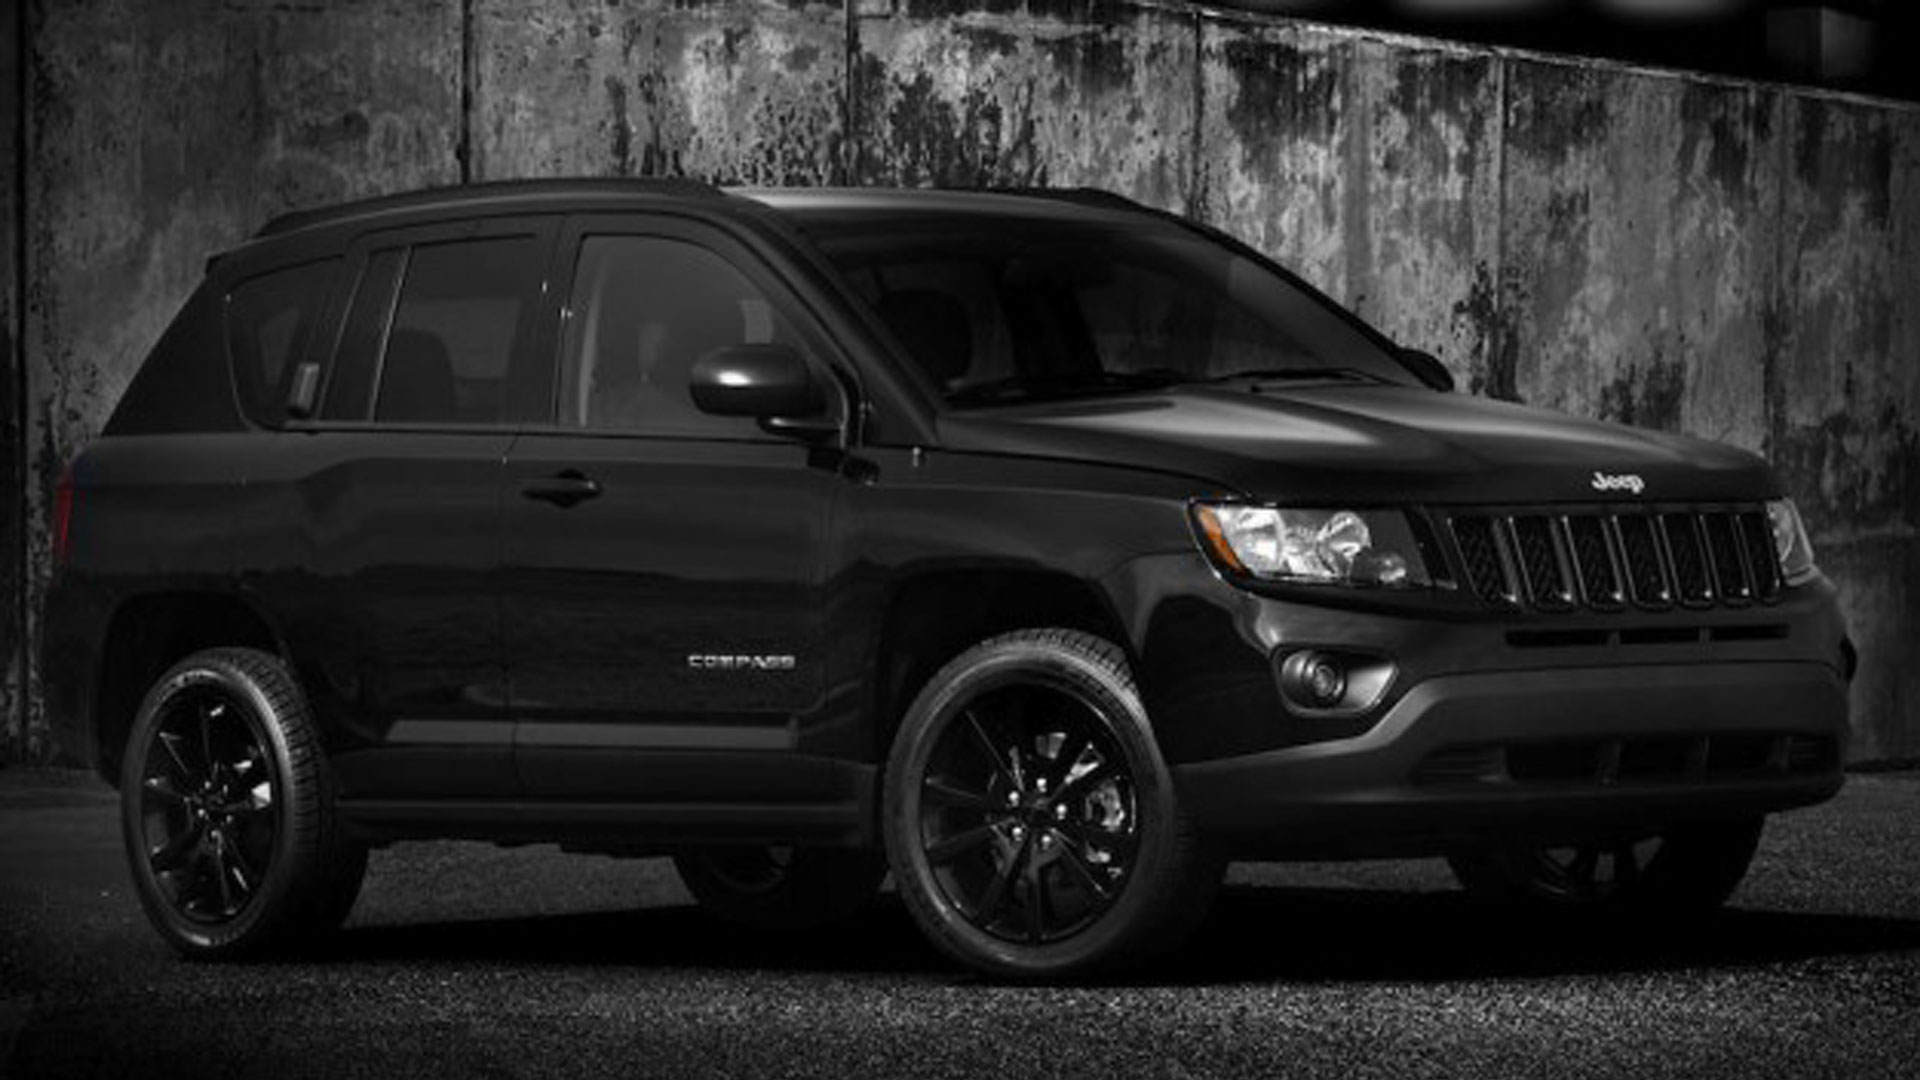 Jeep Compass black #3